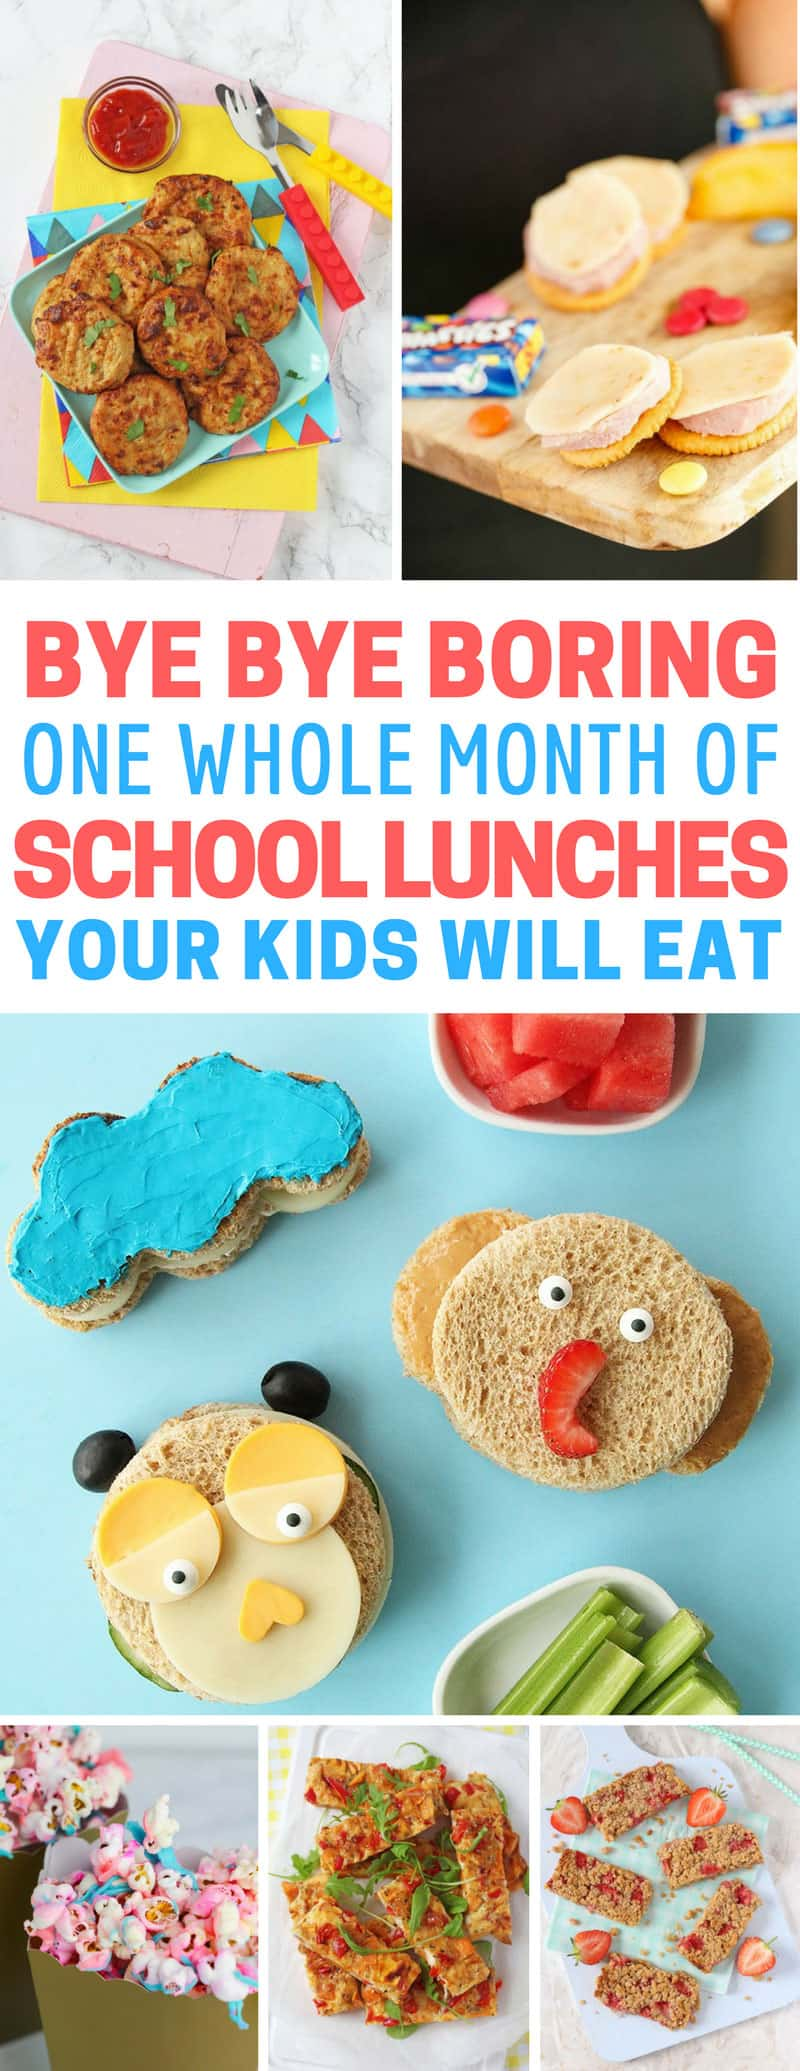 The kids are loving these school lunch ideas - and they're so easy to make too! Thanks for sharing!